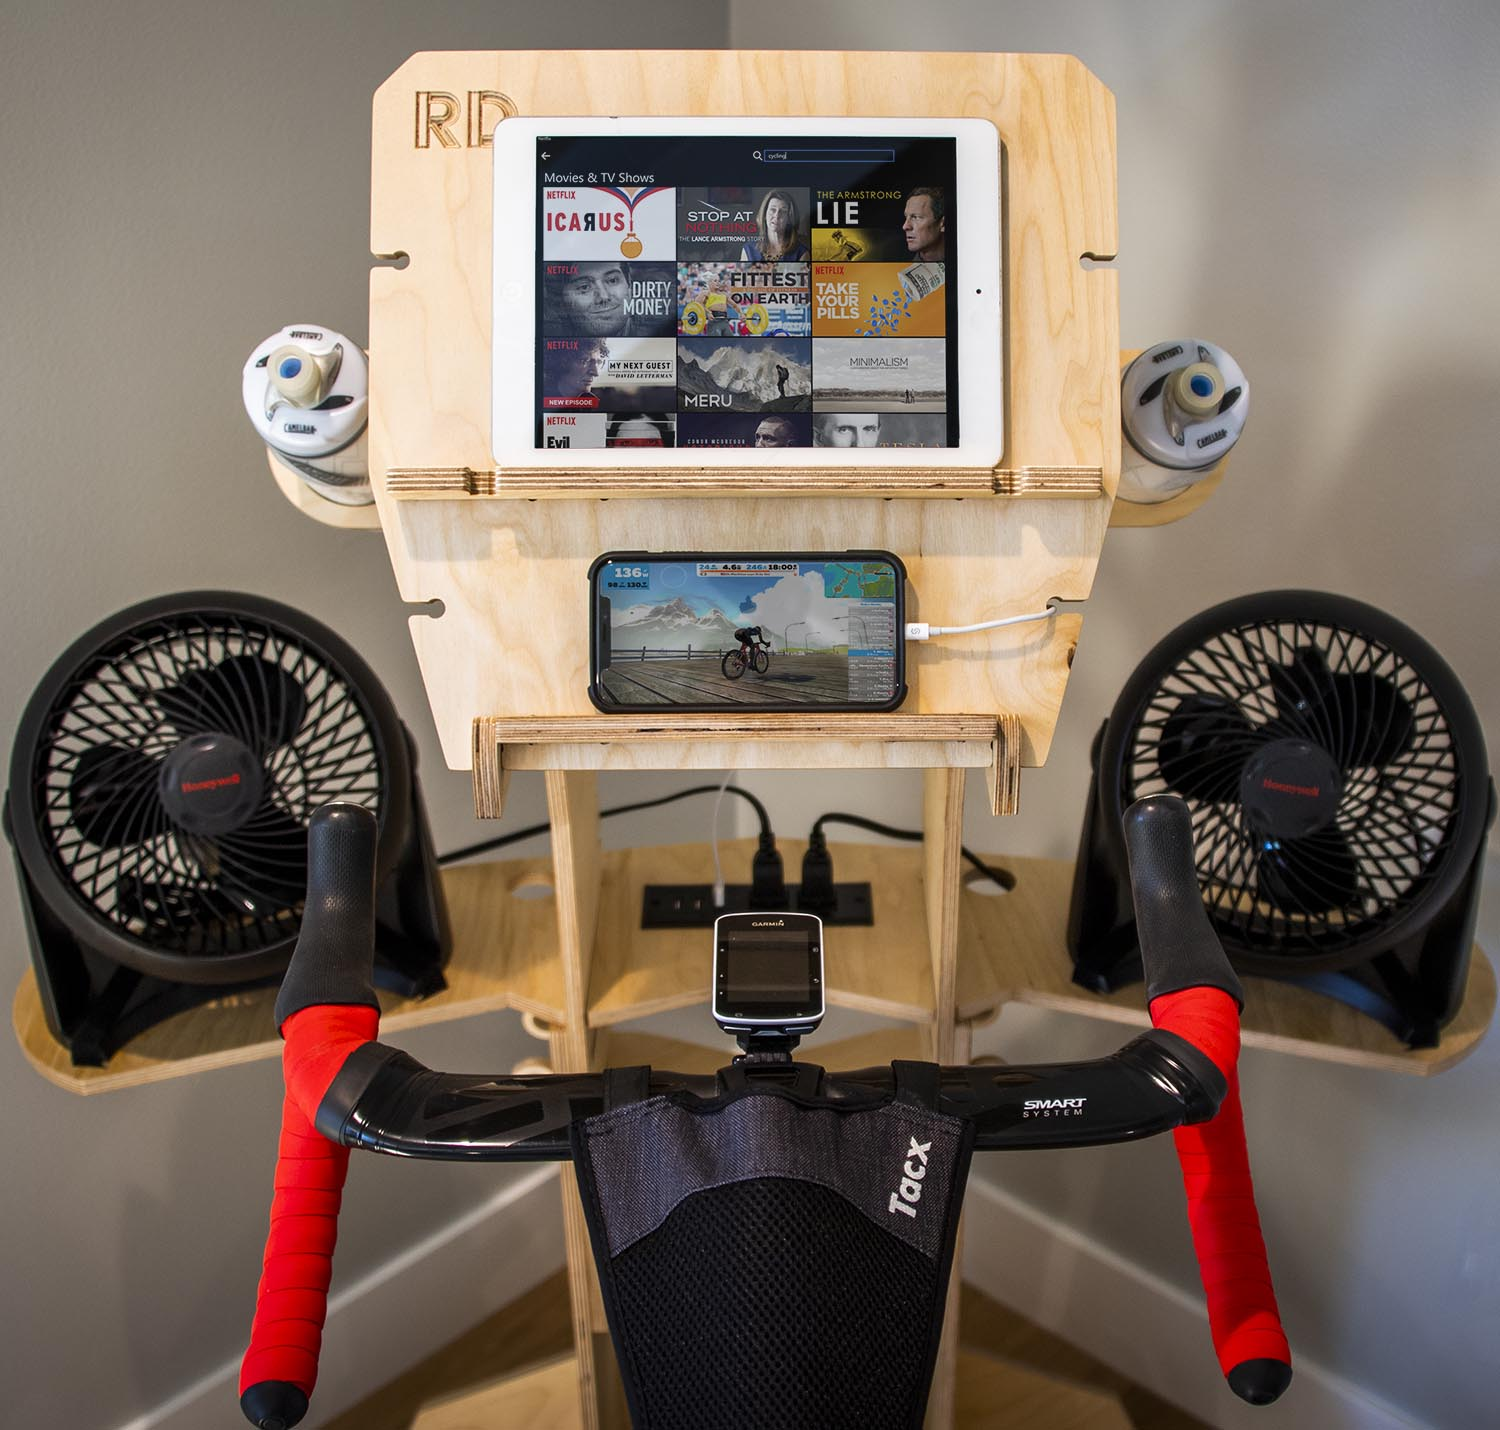 Tablet/Phone Shelf - Phone/TabletRun Zwift, TrainerRoad or any other e-trainer app from your phone while you watch a movie on your tablet. Keep both devices powered up with our integrated USB sockets